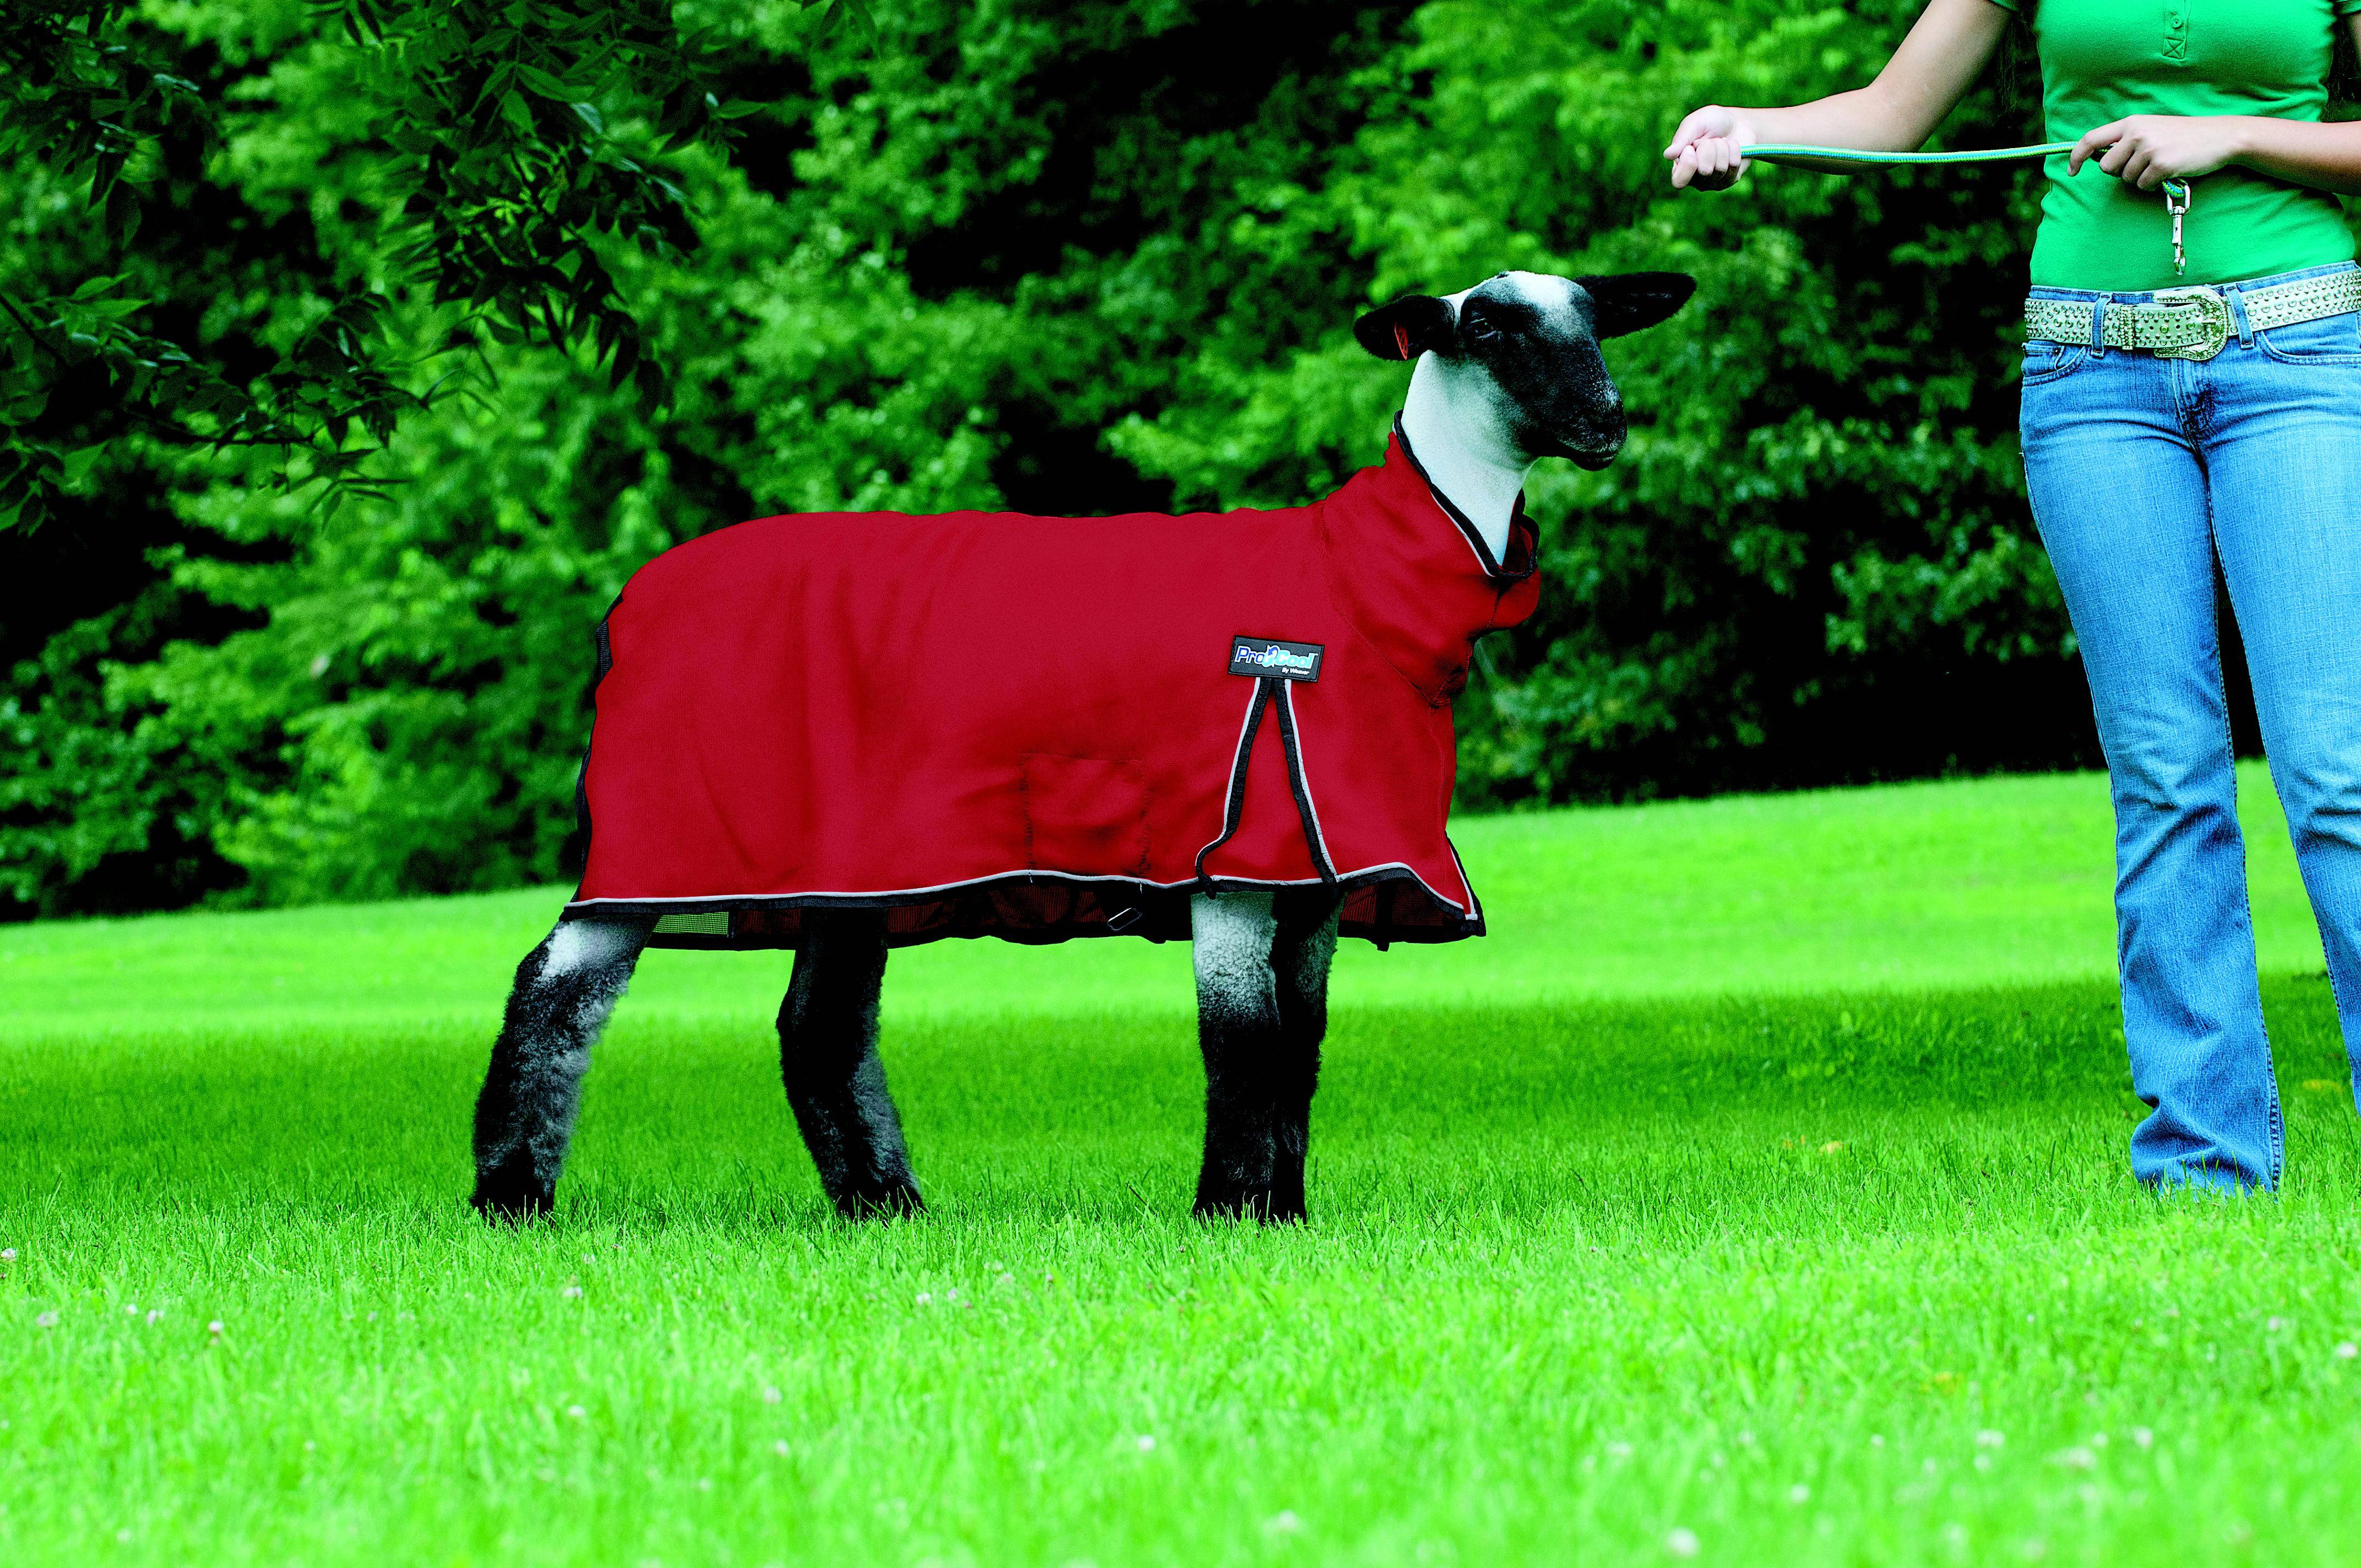 ProCool Mesh Sheep Blanket with Reflective Piping